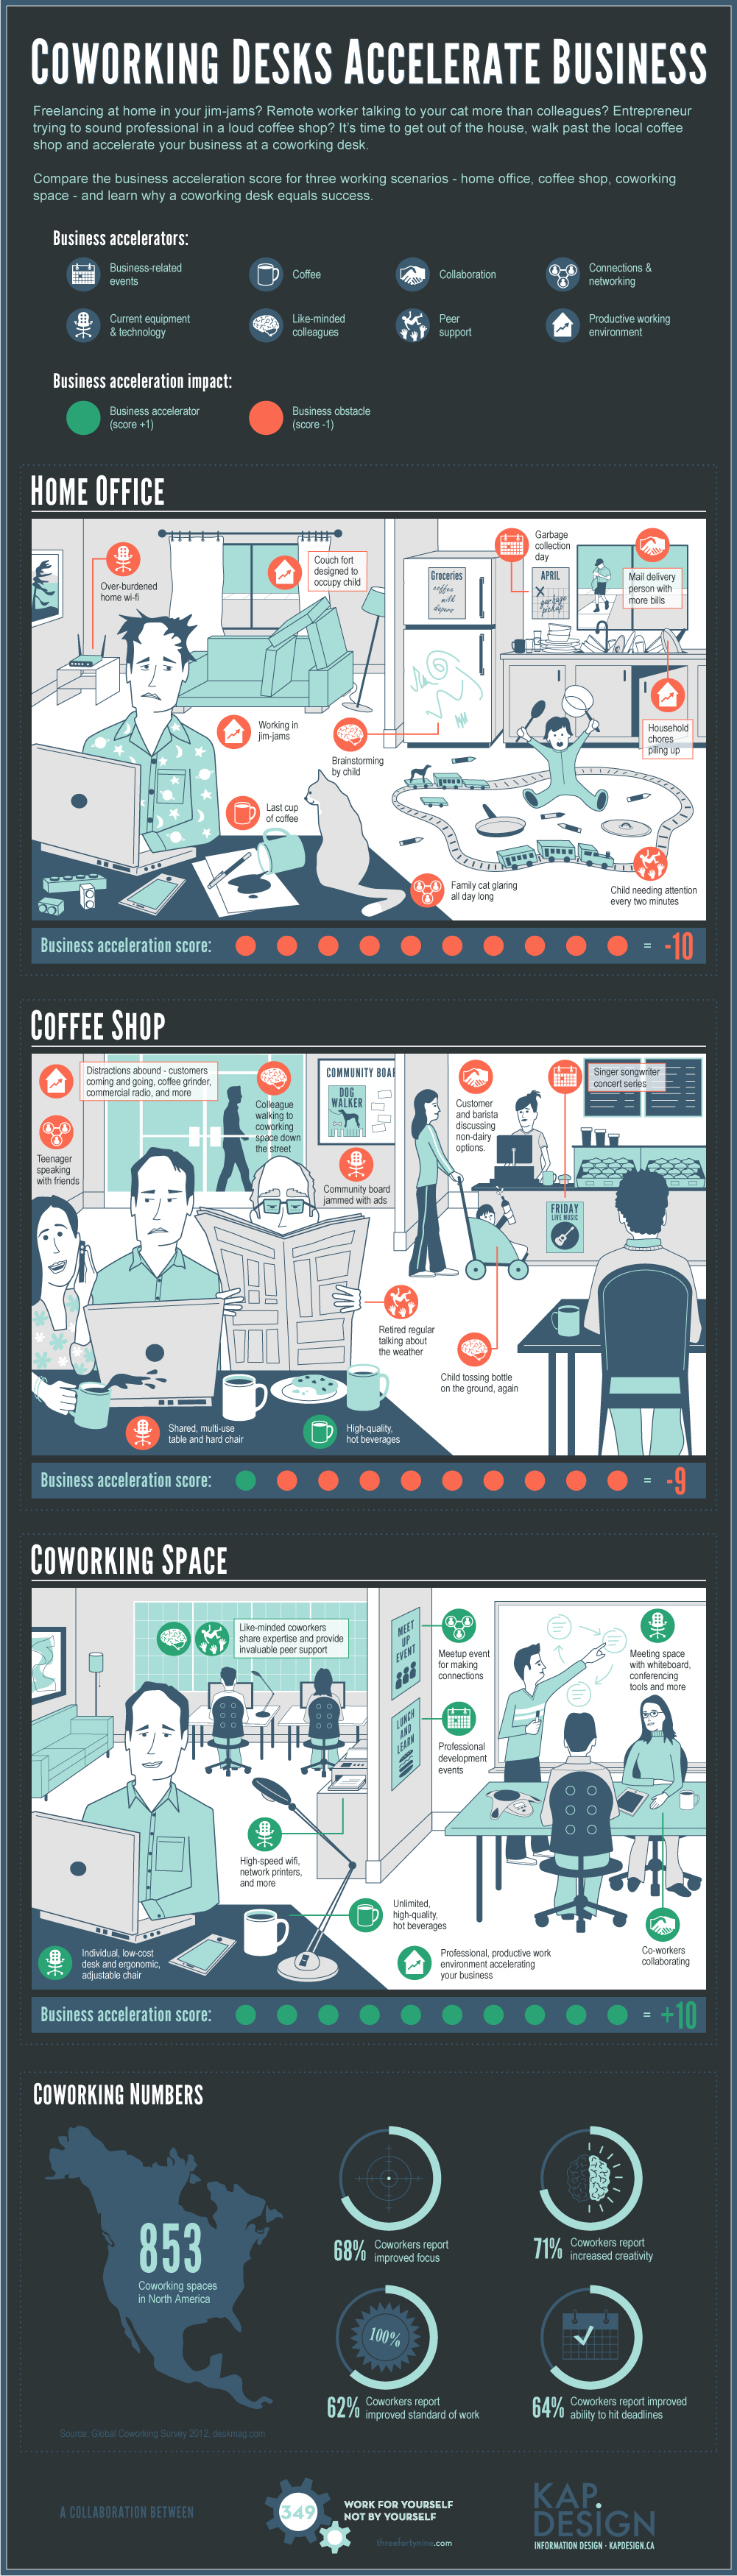 coworking vs working at home